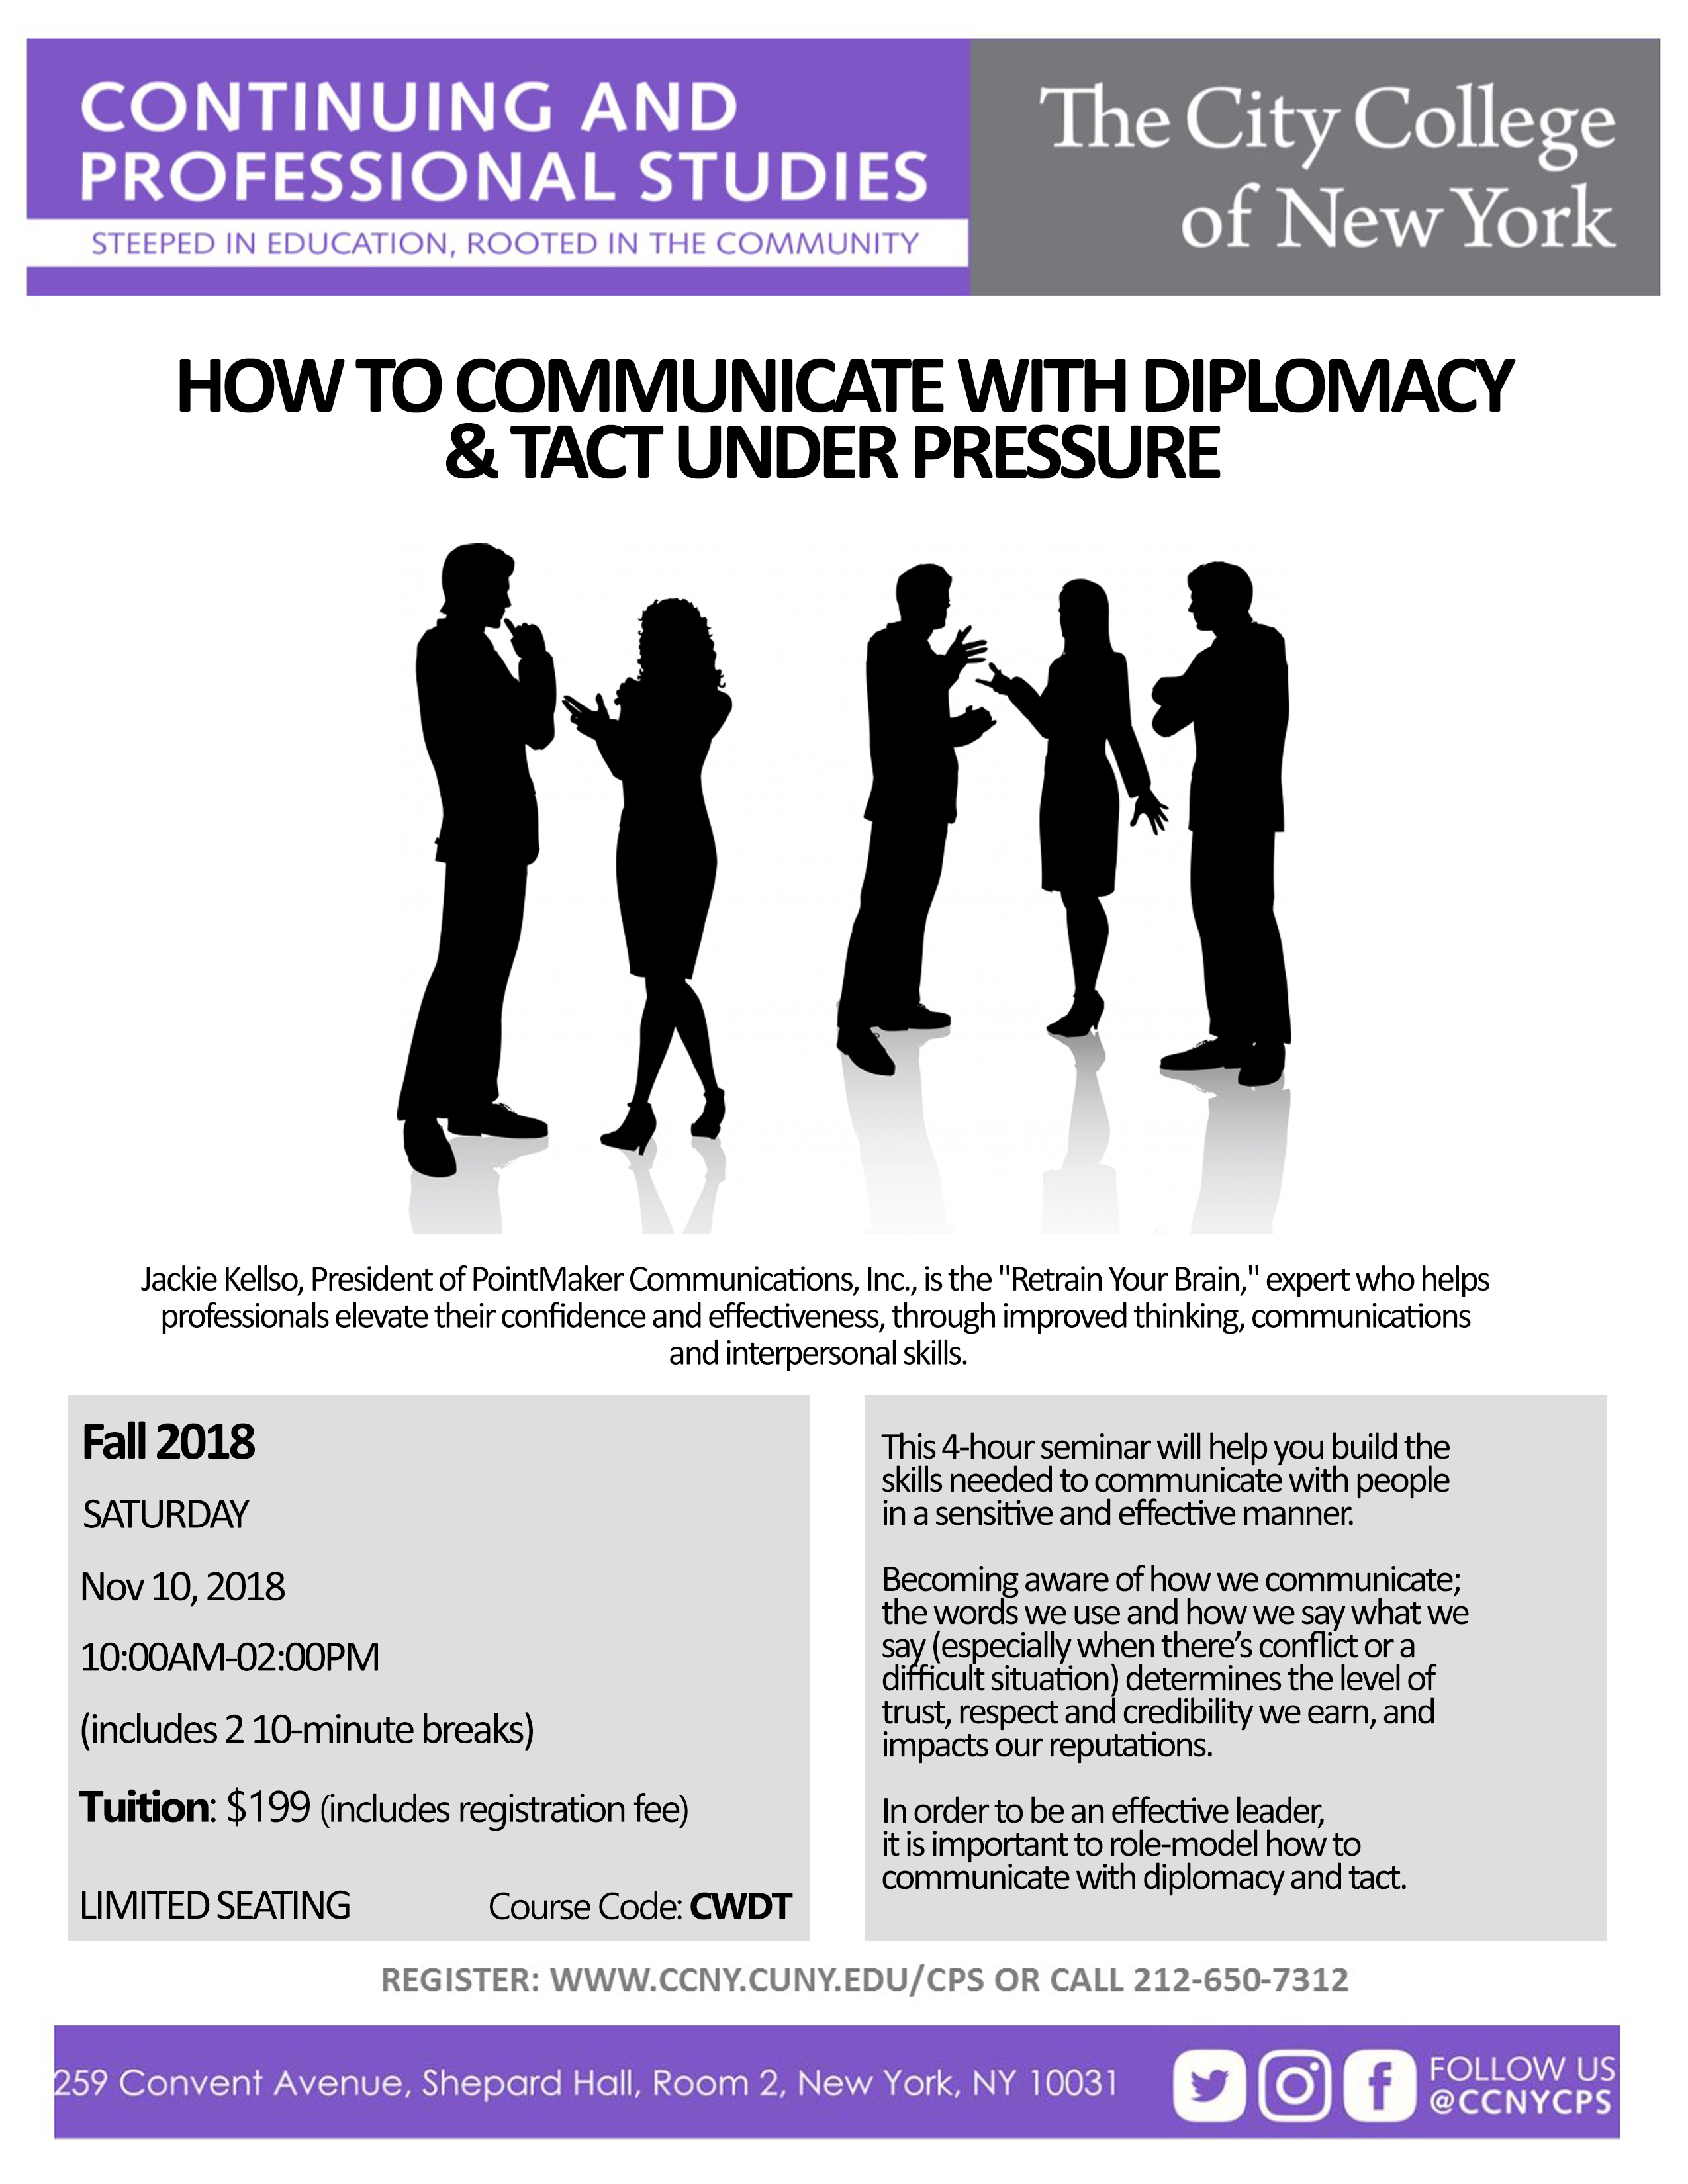 How To Communicate with Diplomacy and Tact Under Pressure